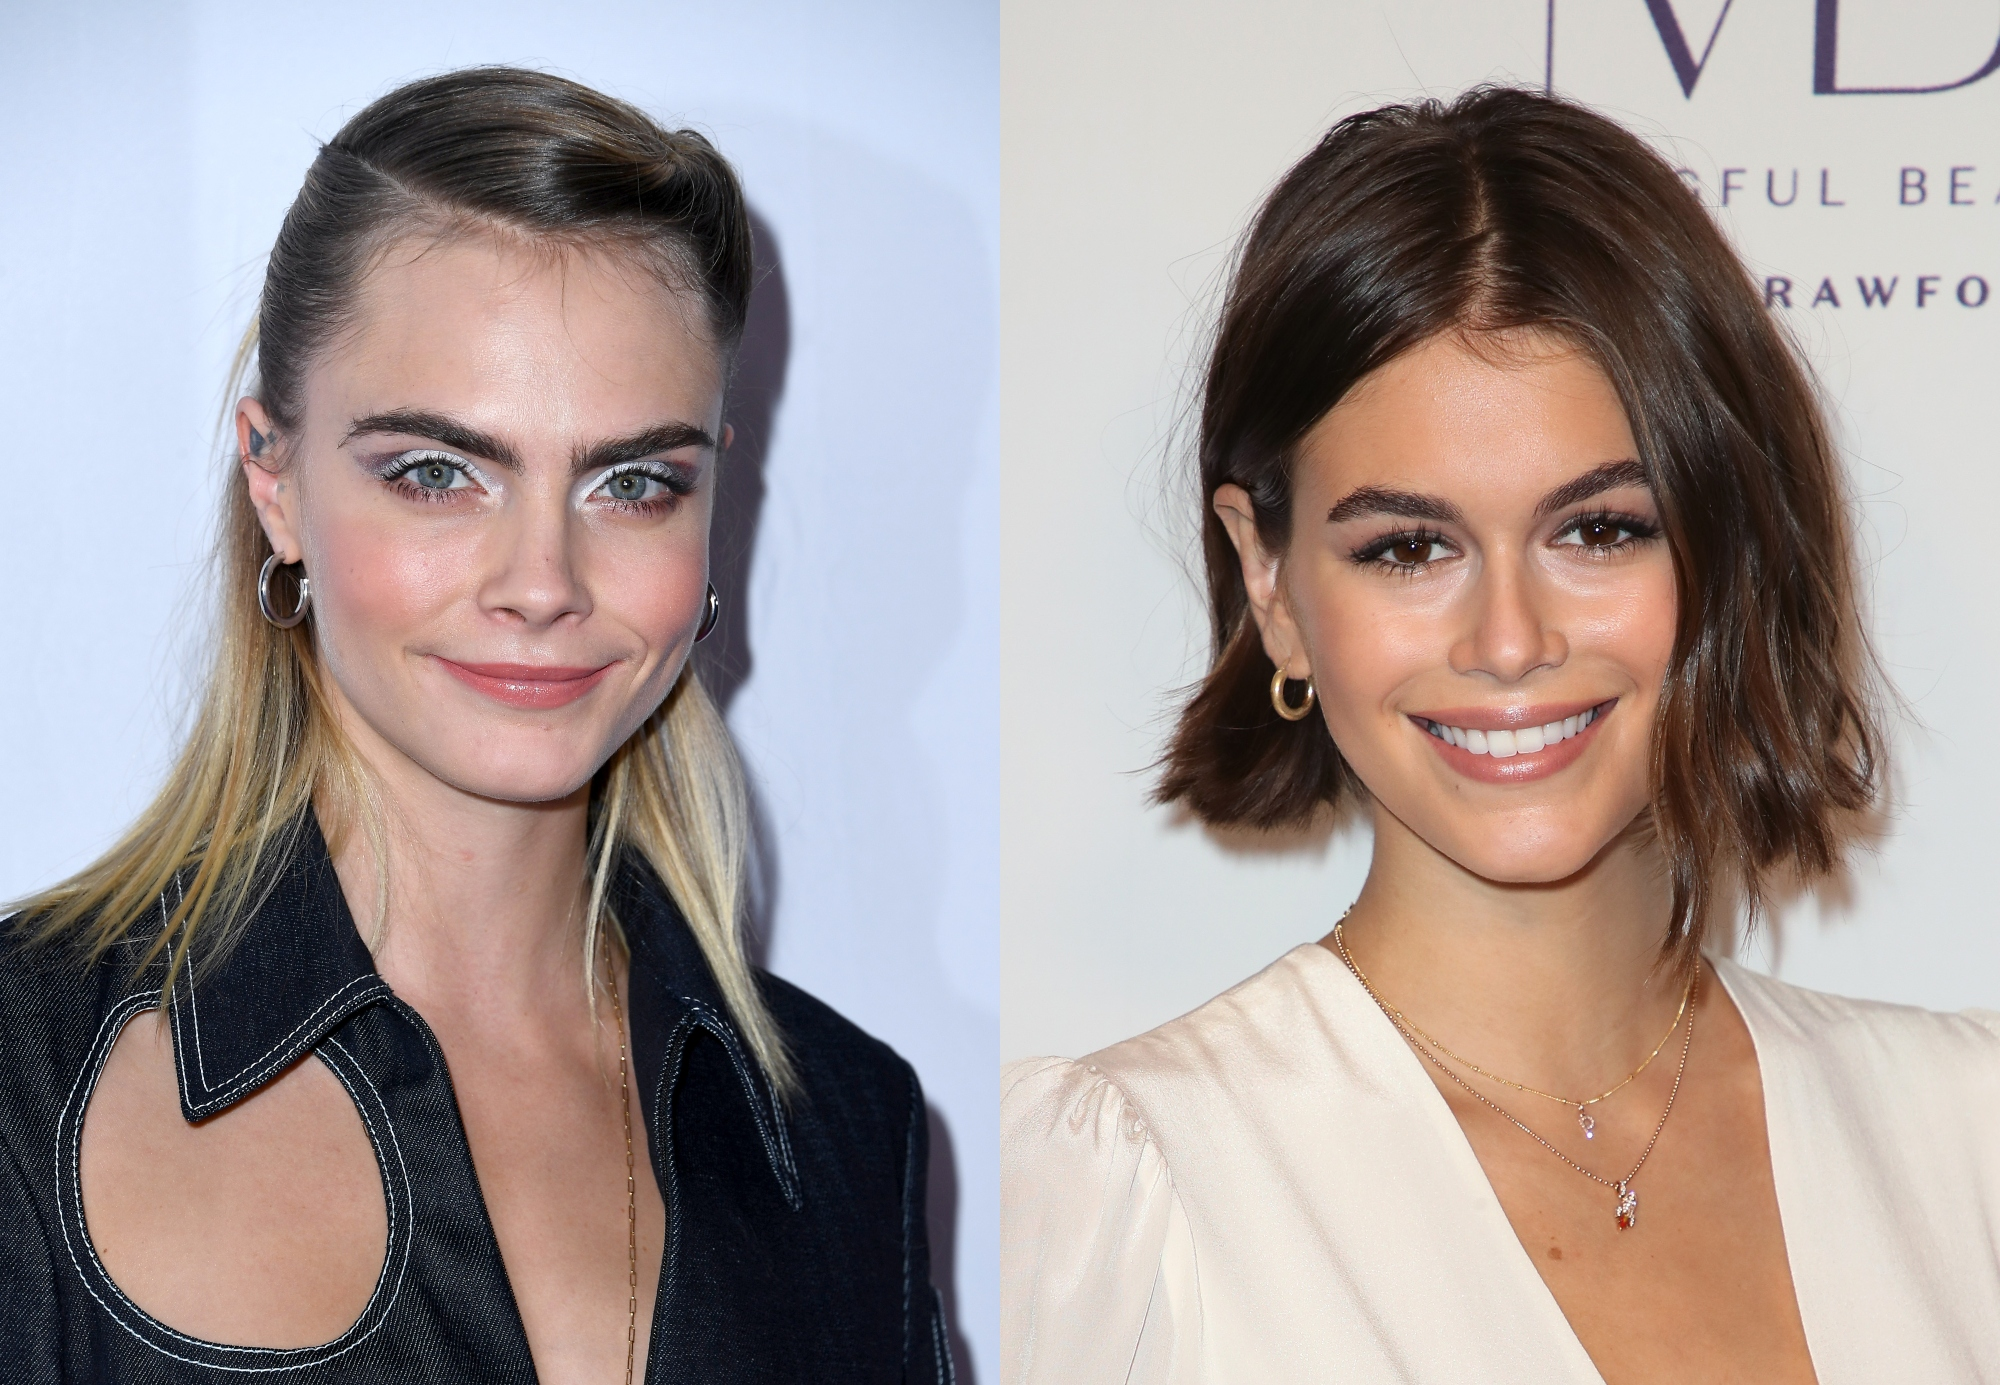 Who Are Cara Delevingne And Kaia Gerber S Famous Exes